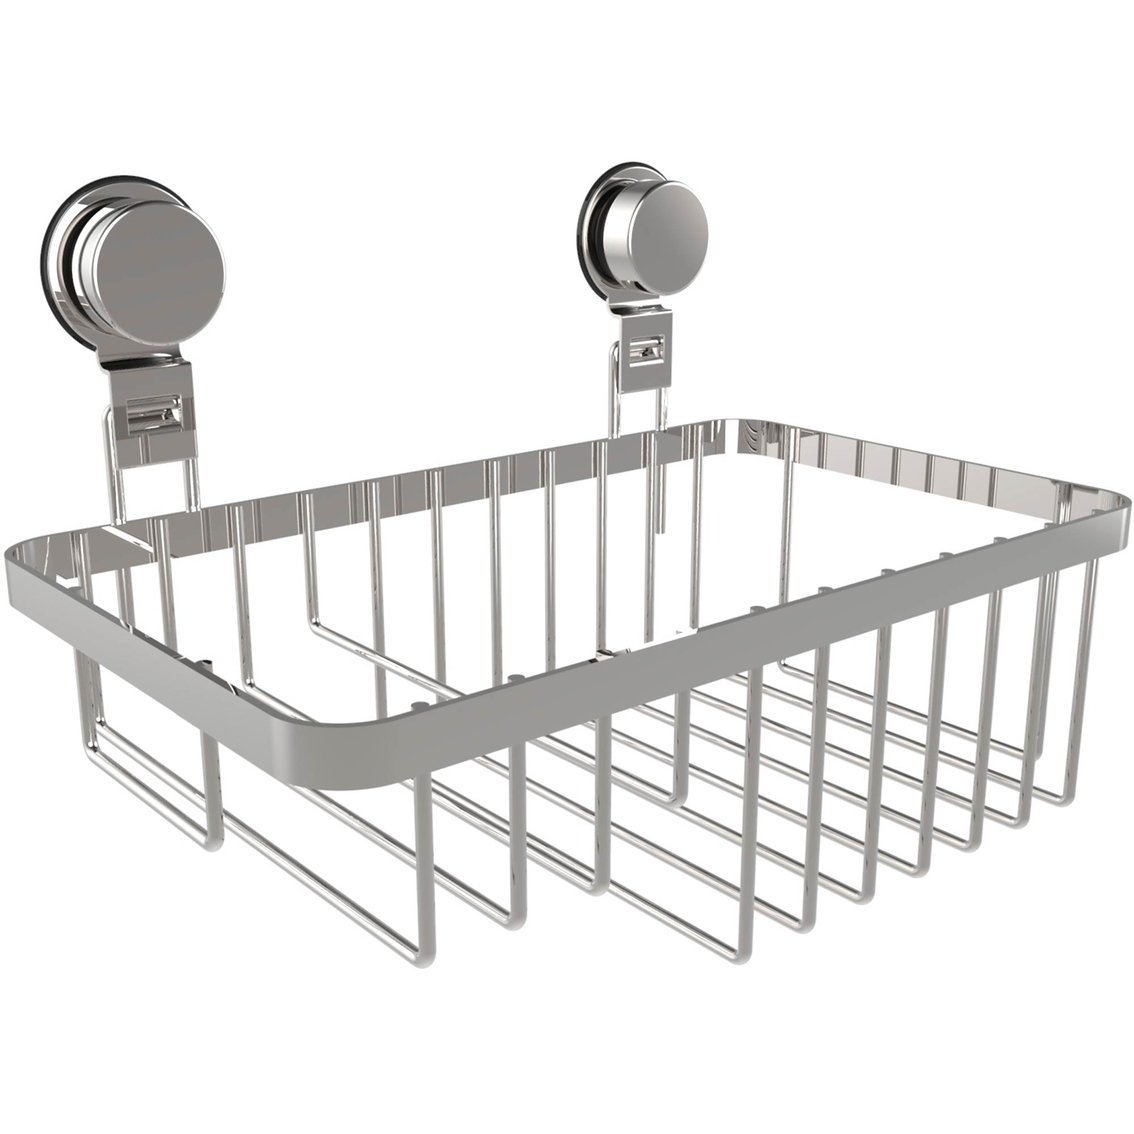 Lavish Home Wall Mount Shower Caddy   Tub & Shower Accessories ...